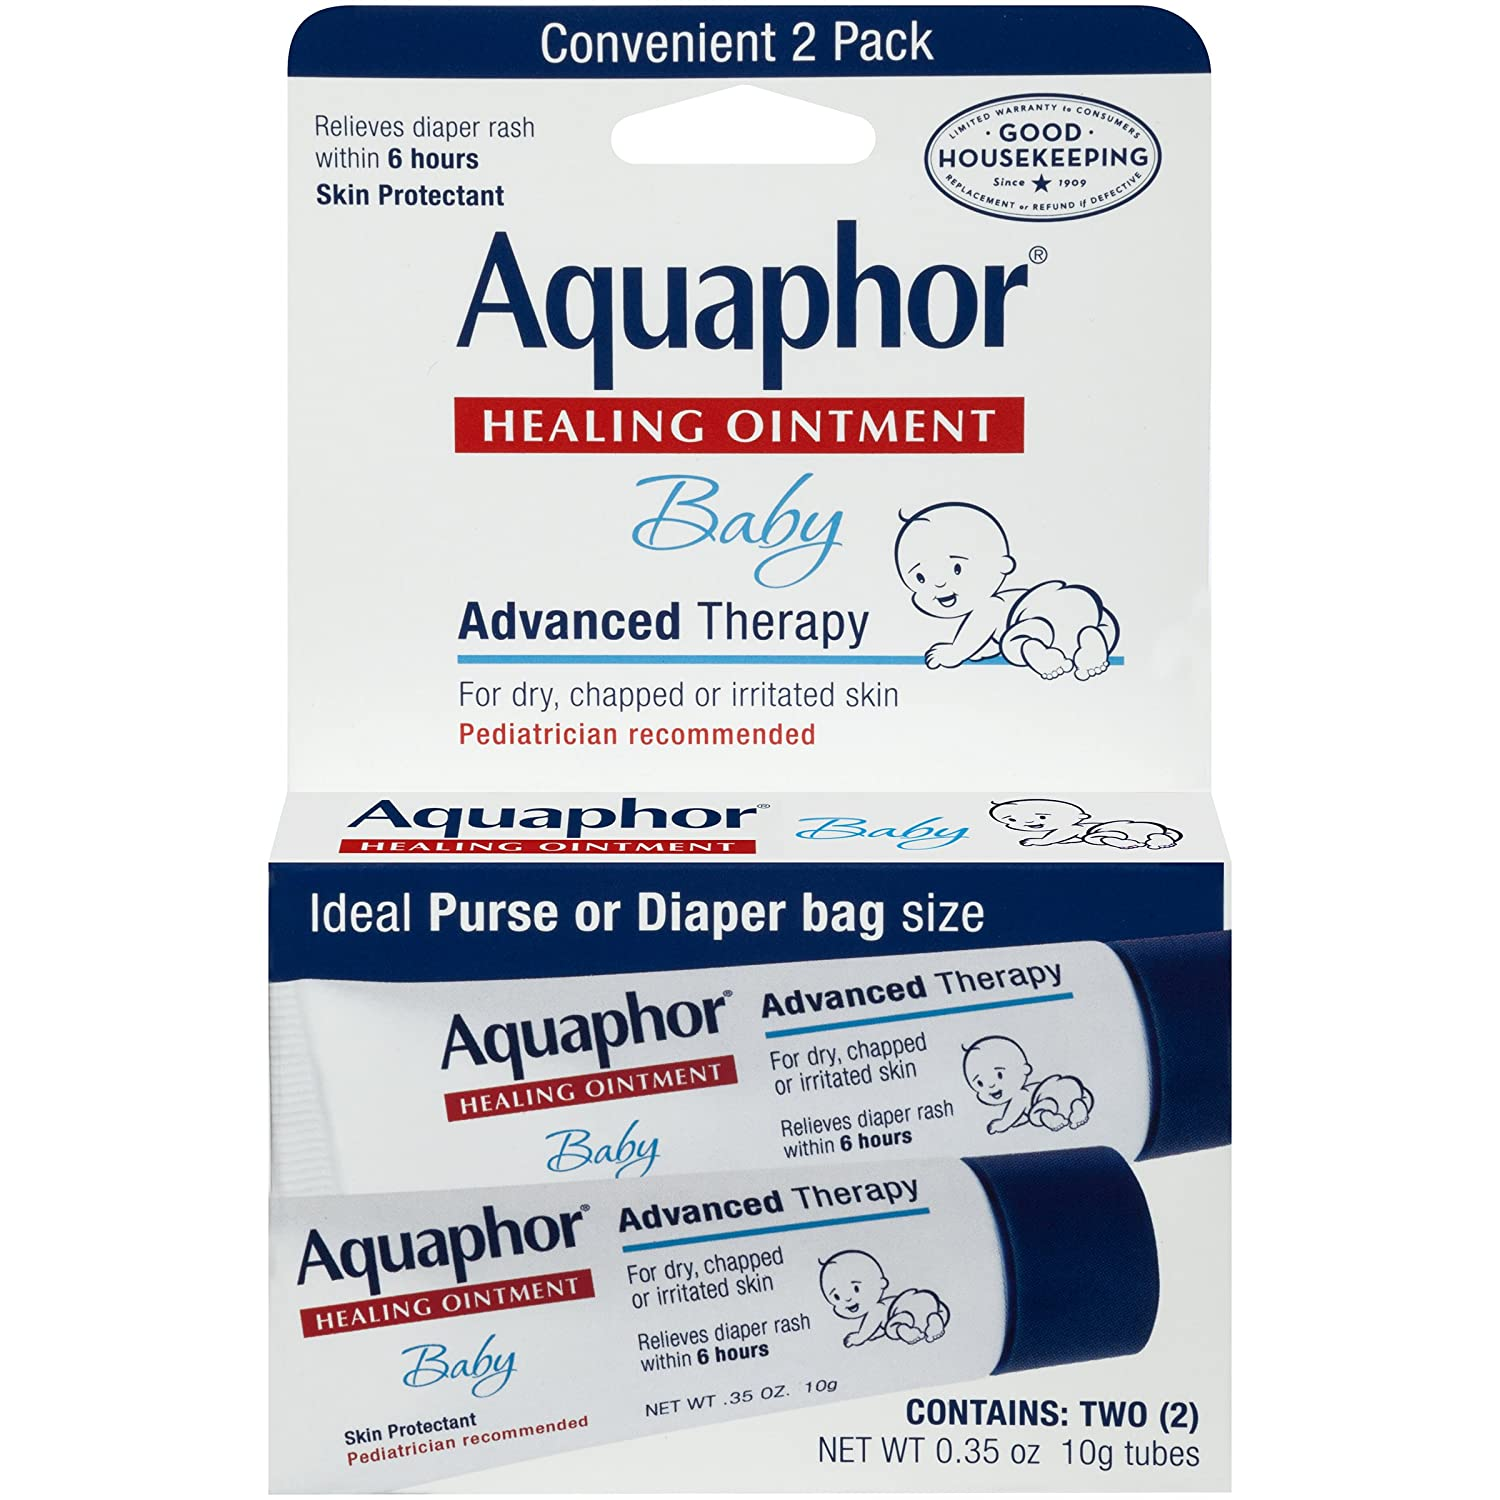 Aquaphor Baby Advanced Therapy Healing Ointment Skin Protectant 2-.35 Ounce Tubes AQP11047